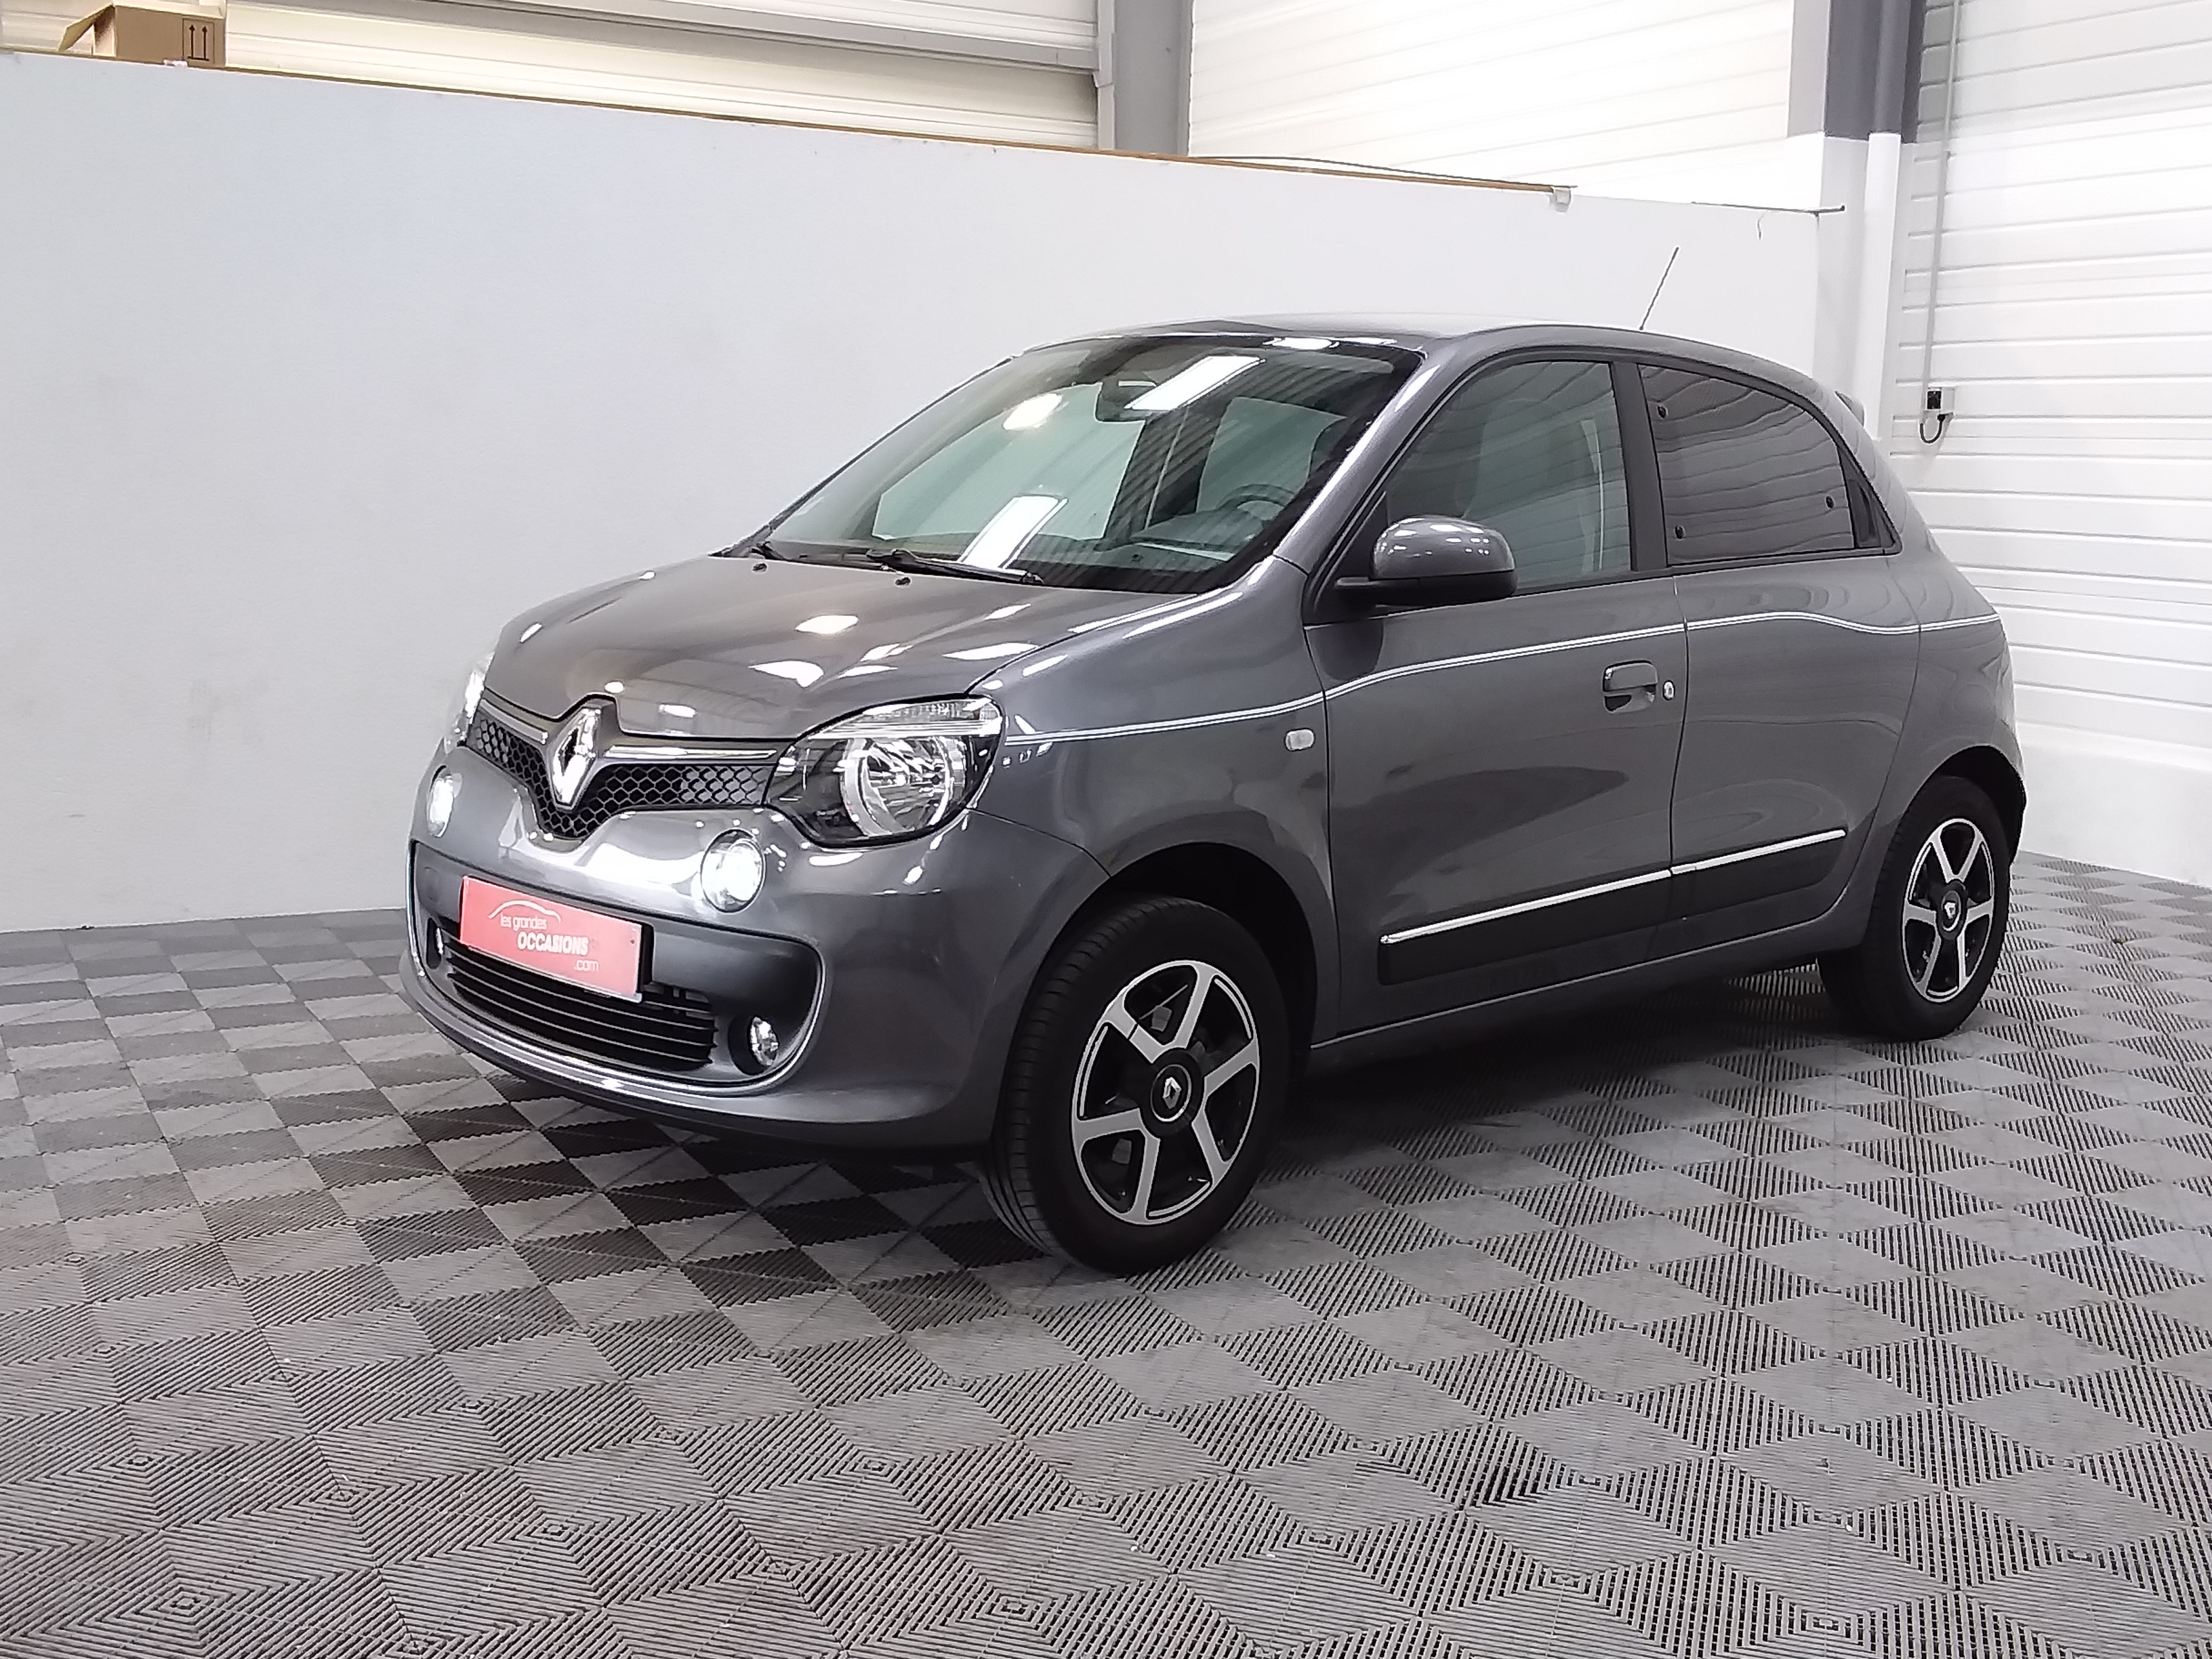 RENAULT TWINGO III 0.9 TCe 90 Energy E6C Intens d'occasion